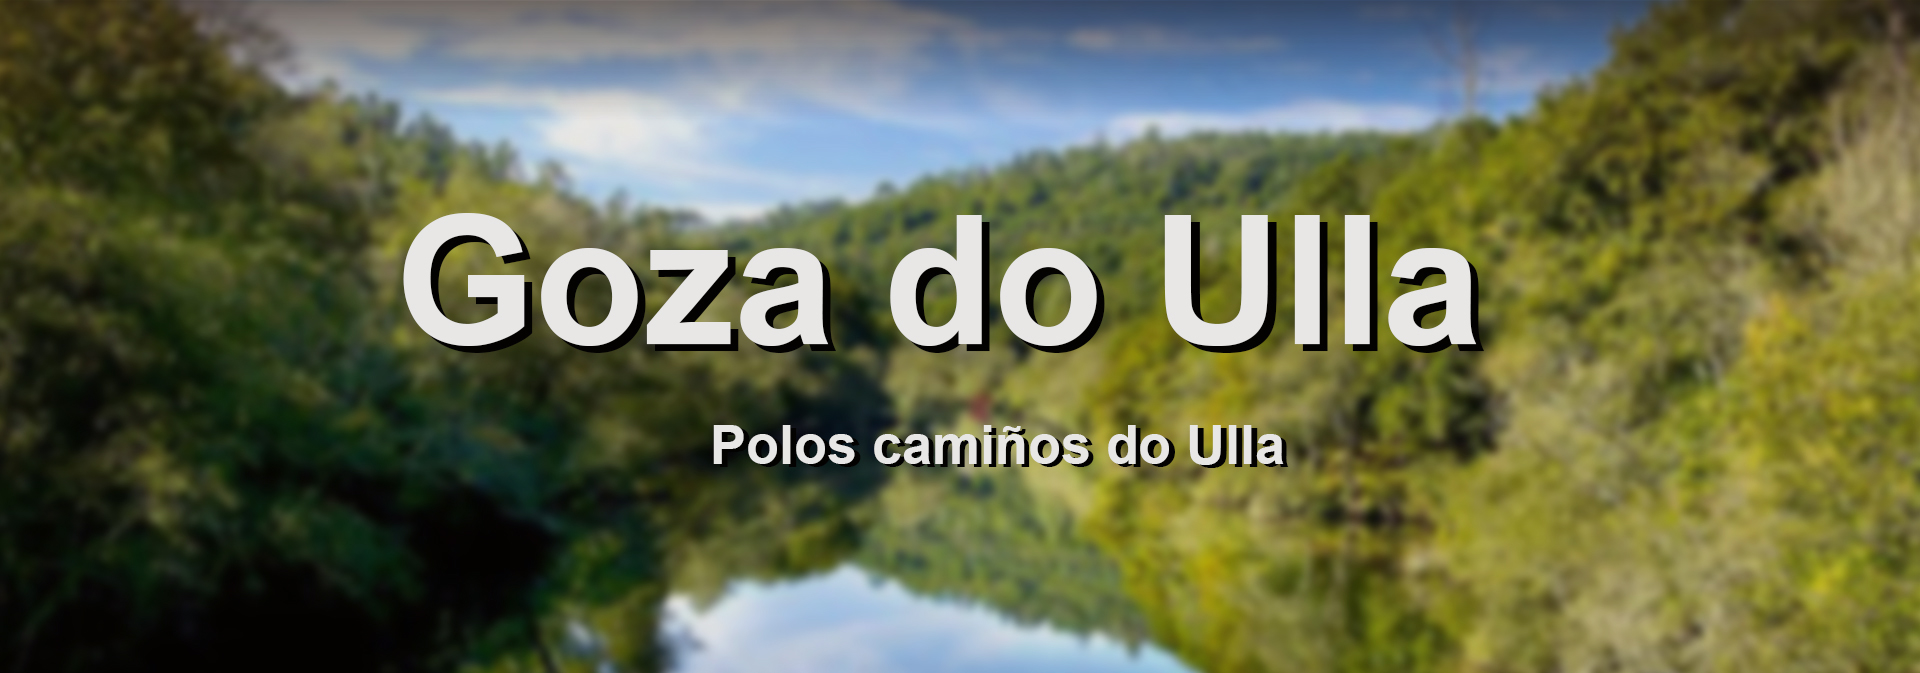 Goza do Ulla